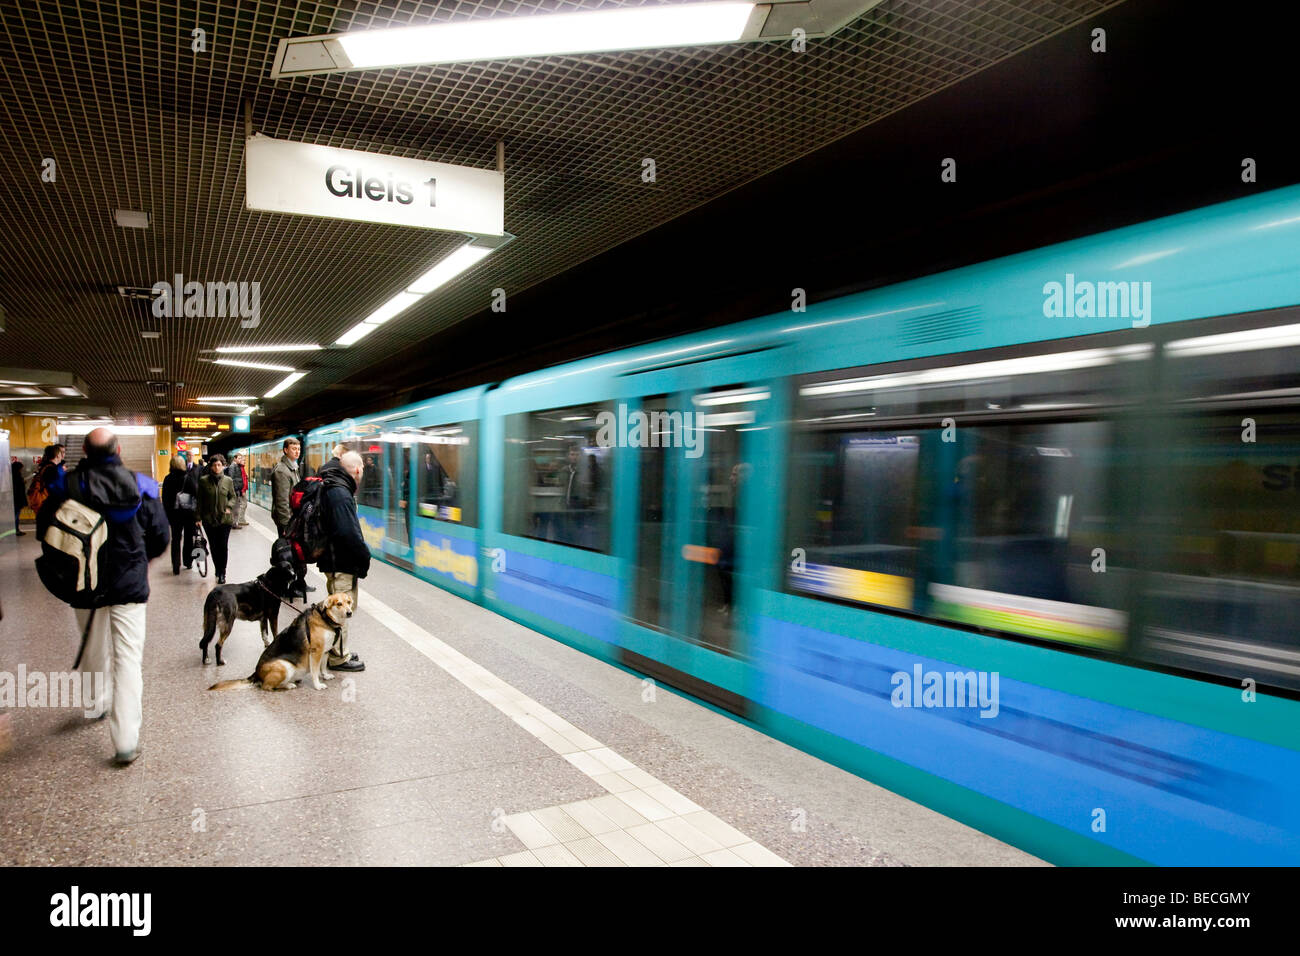 Commuters waiting for the subway pulling in, Frankfurt, Hesse, Germany, Europe Stock Photo